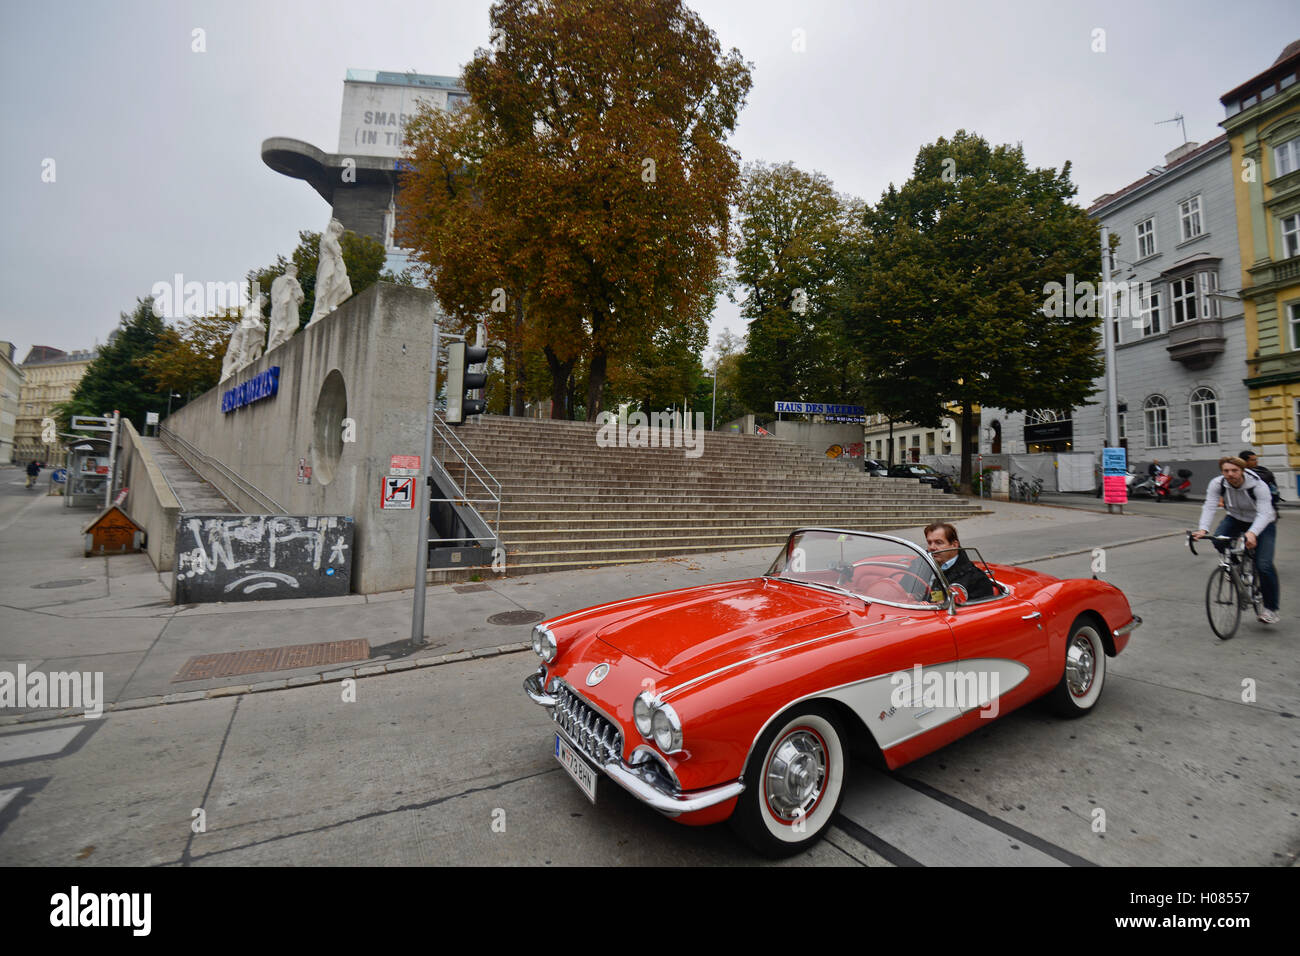 Aston Martin Red Convertible Driving In The Streets Of Vienna Stock